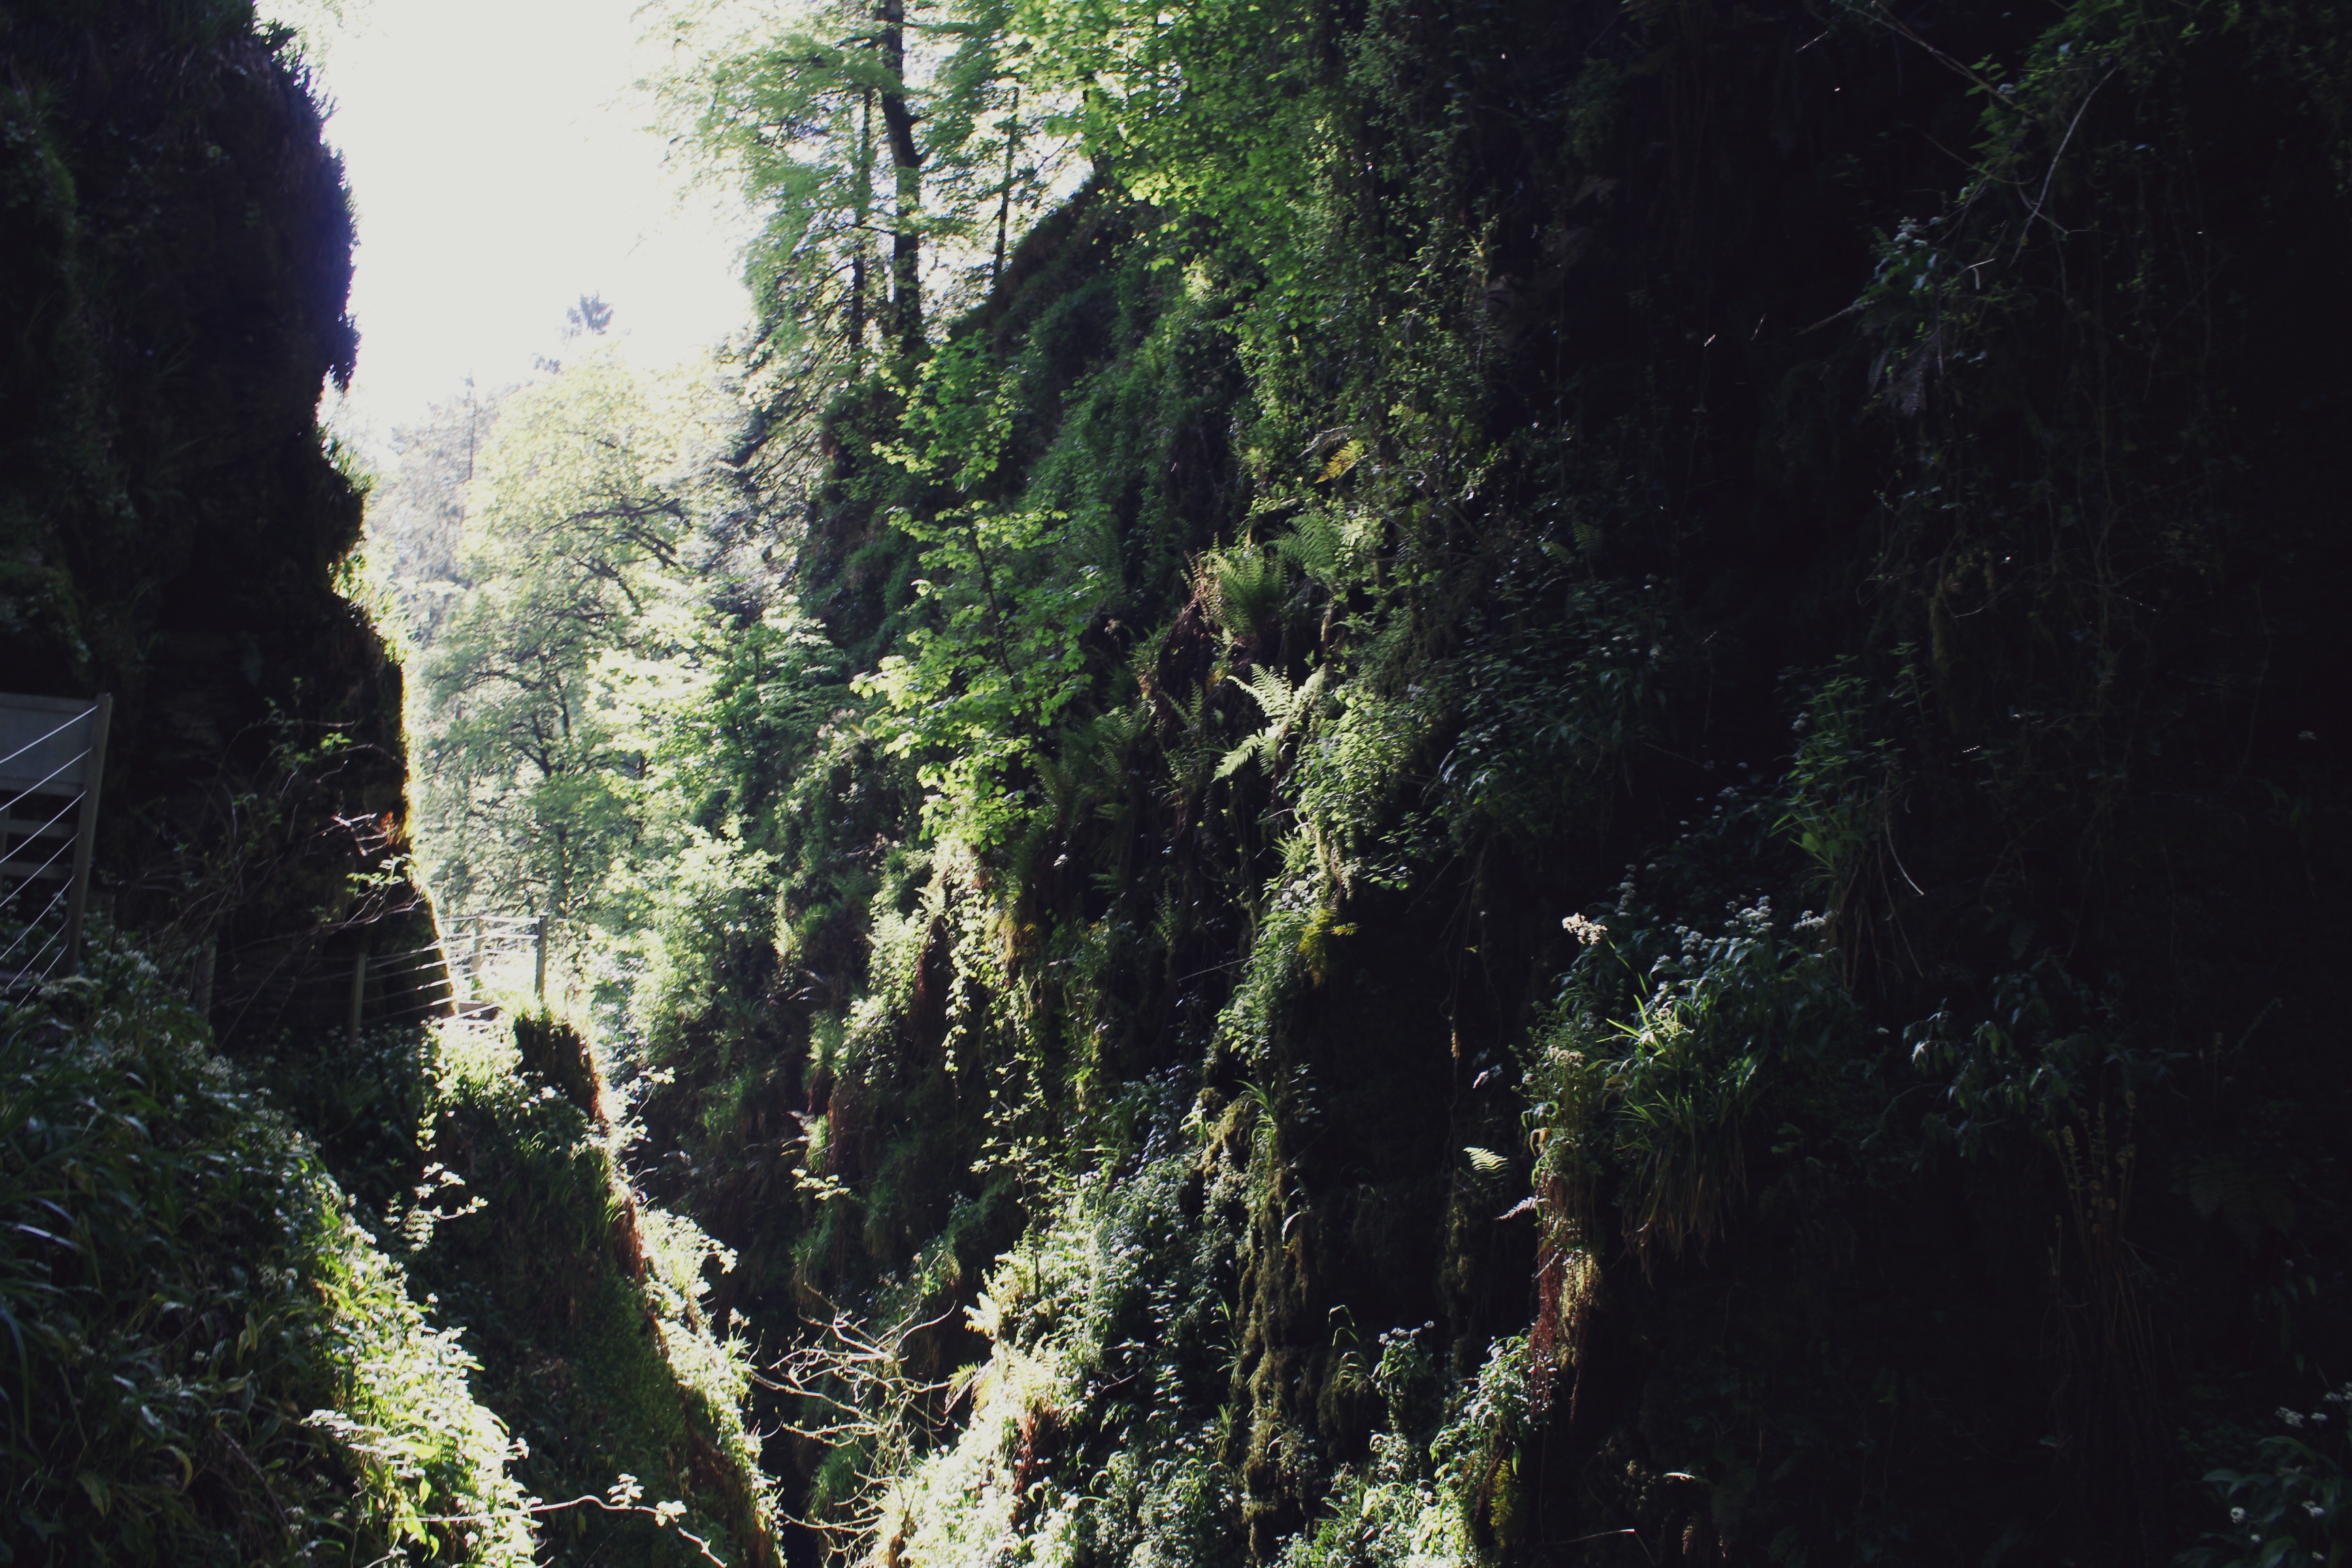 Lush greenery on the sides of Lydford Gorge, Devon